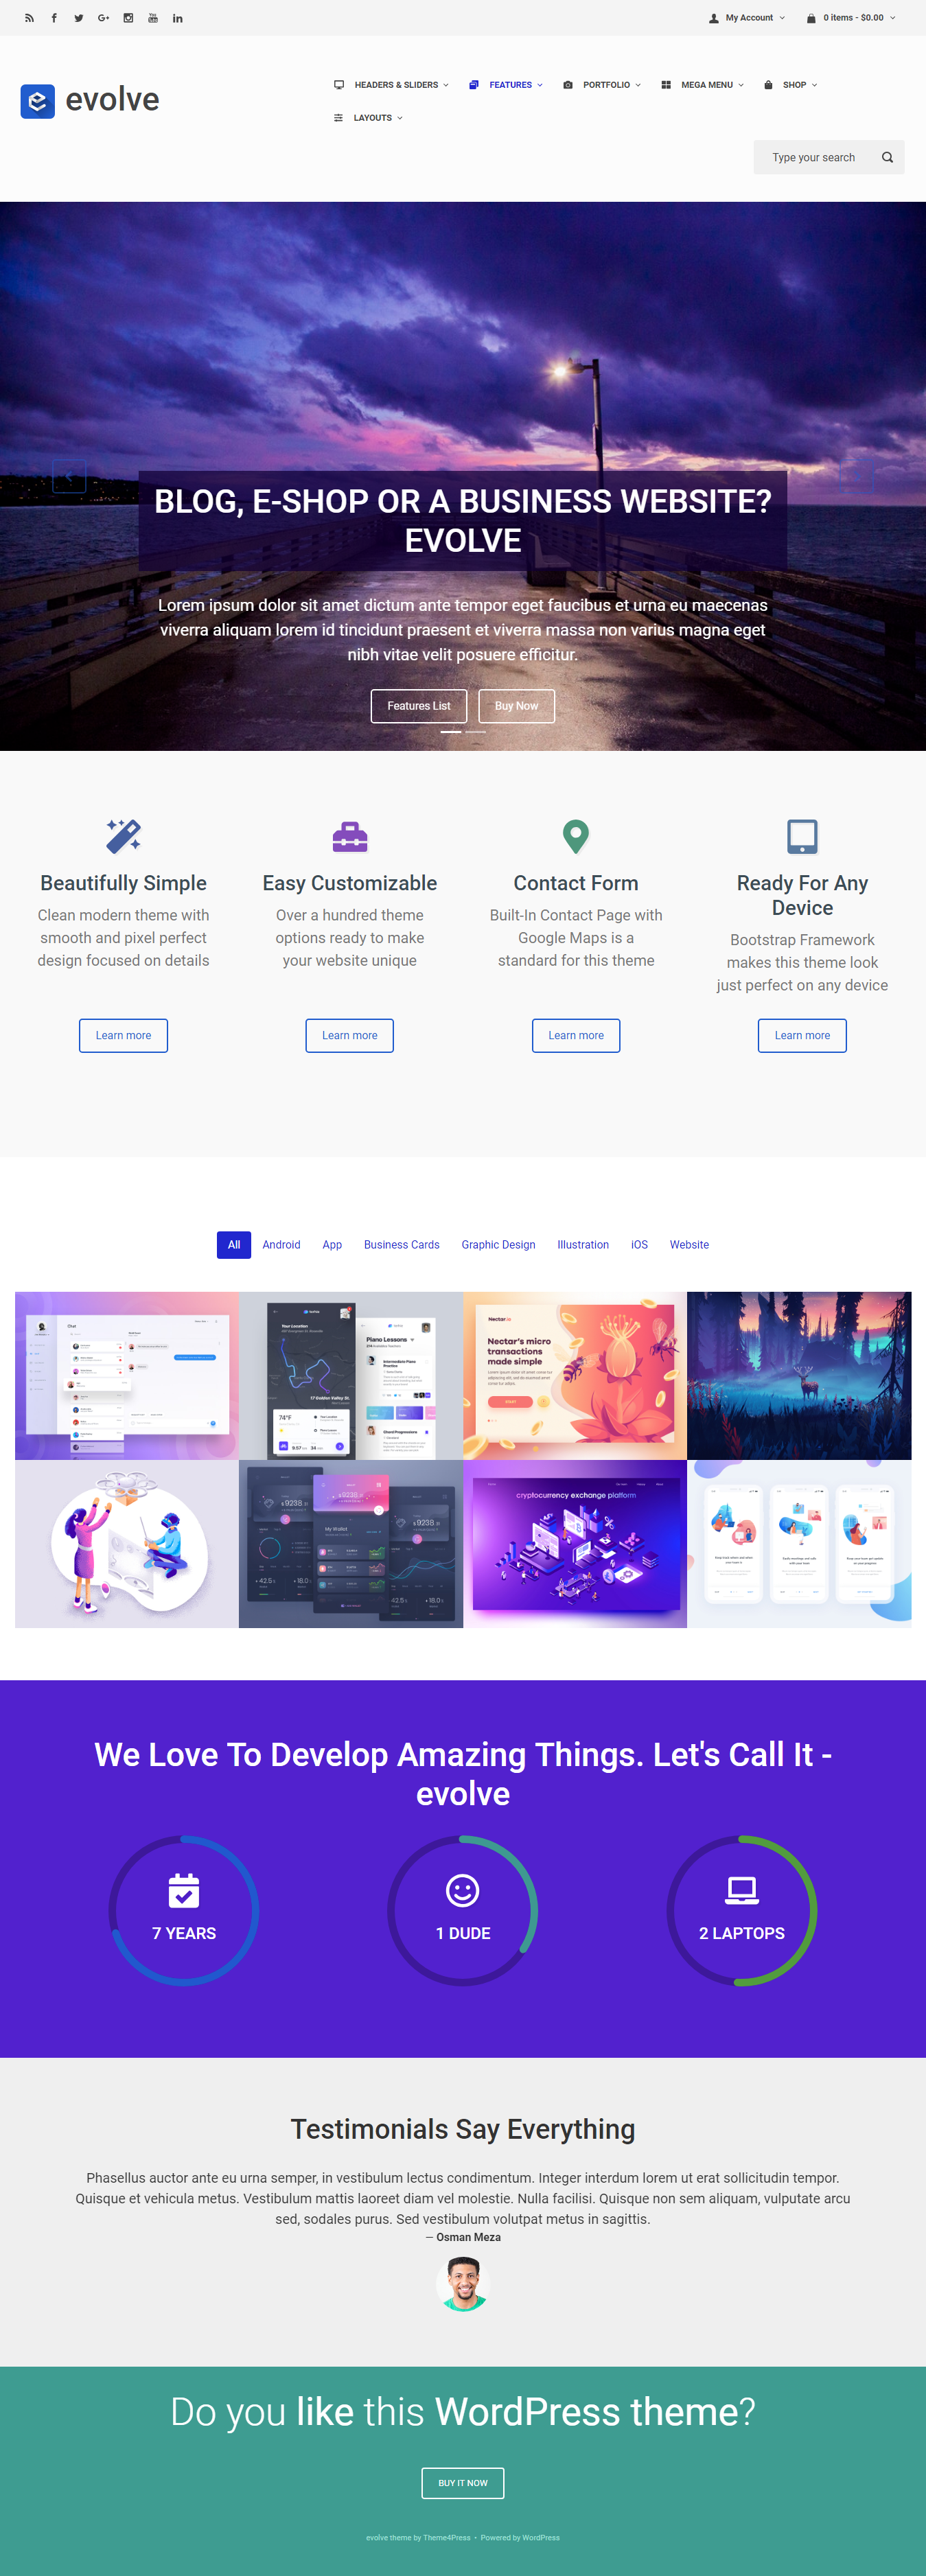 Evolve - Best Free BuddyPress WordPress Theme